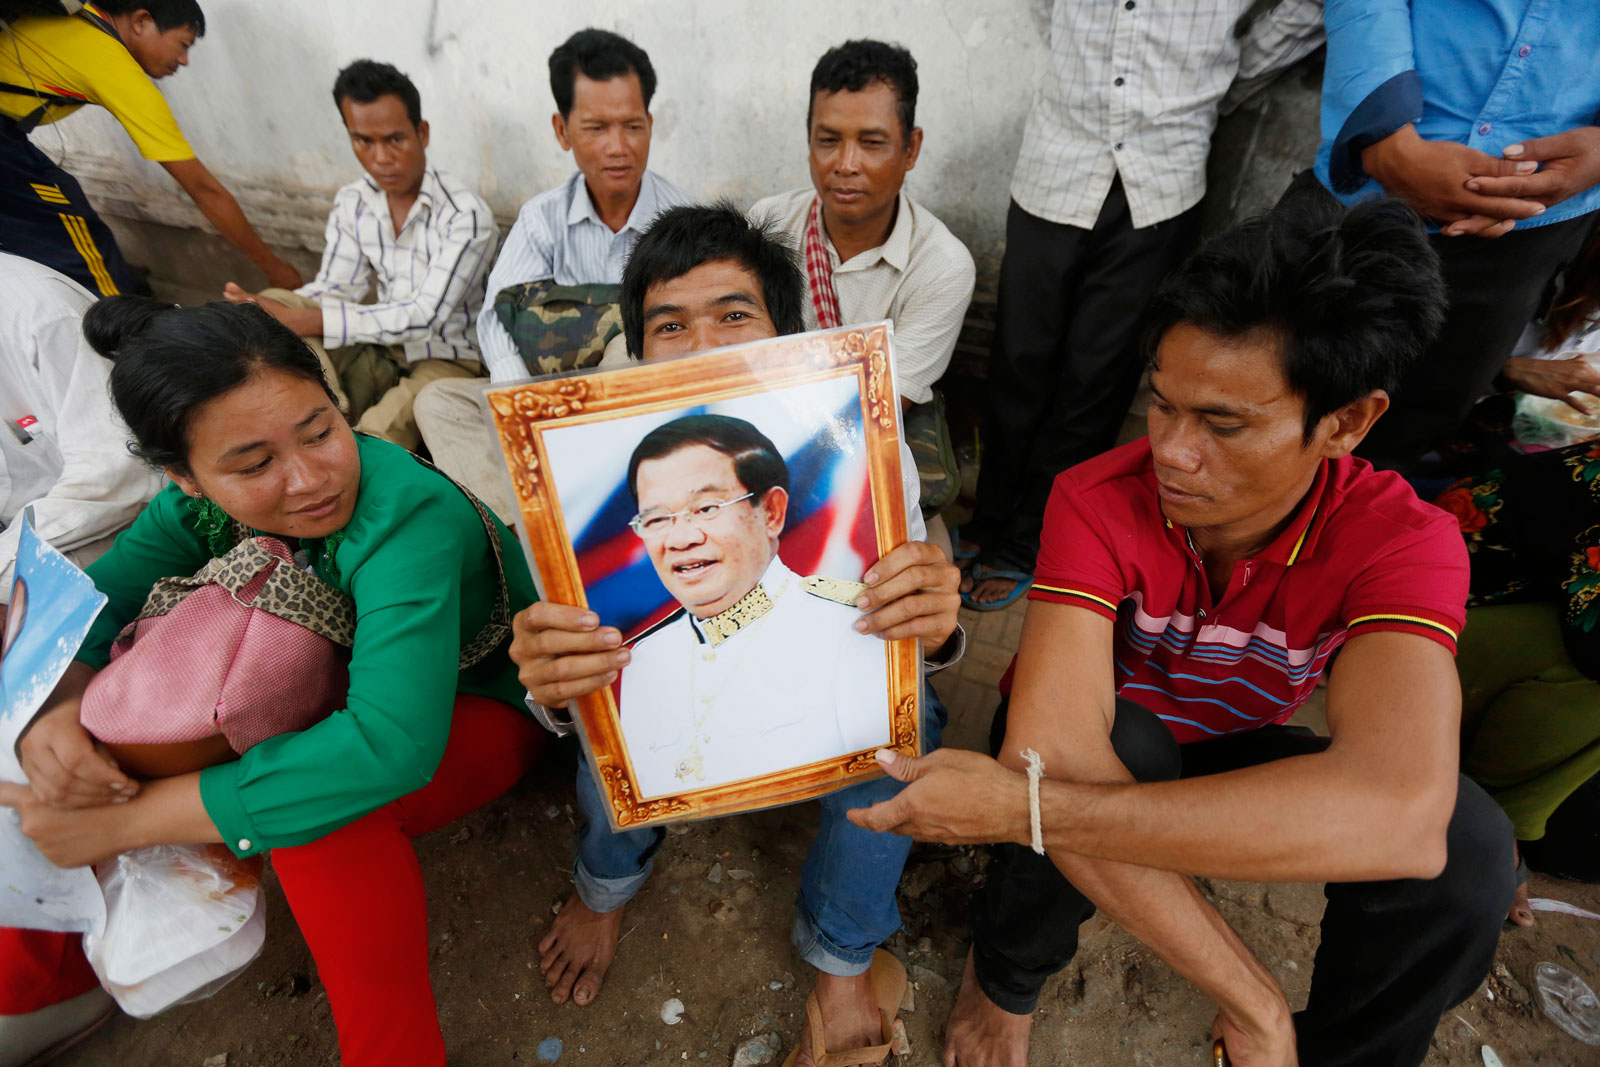 Putting Cambodia back on track